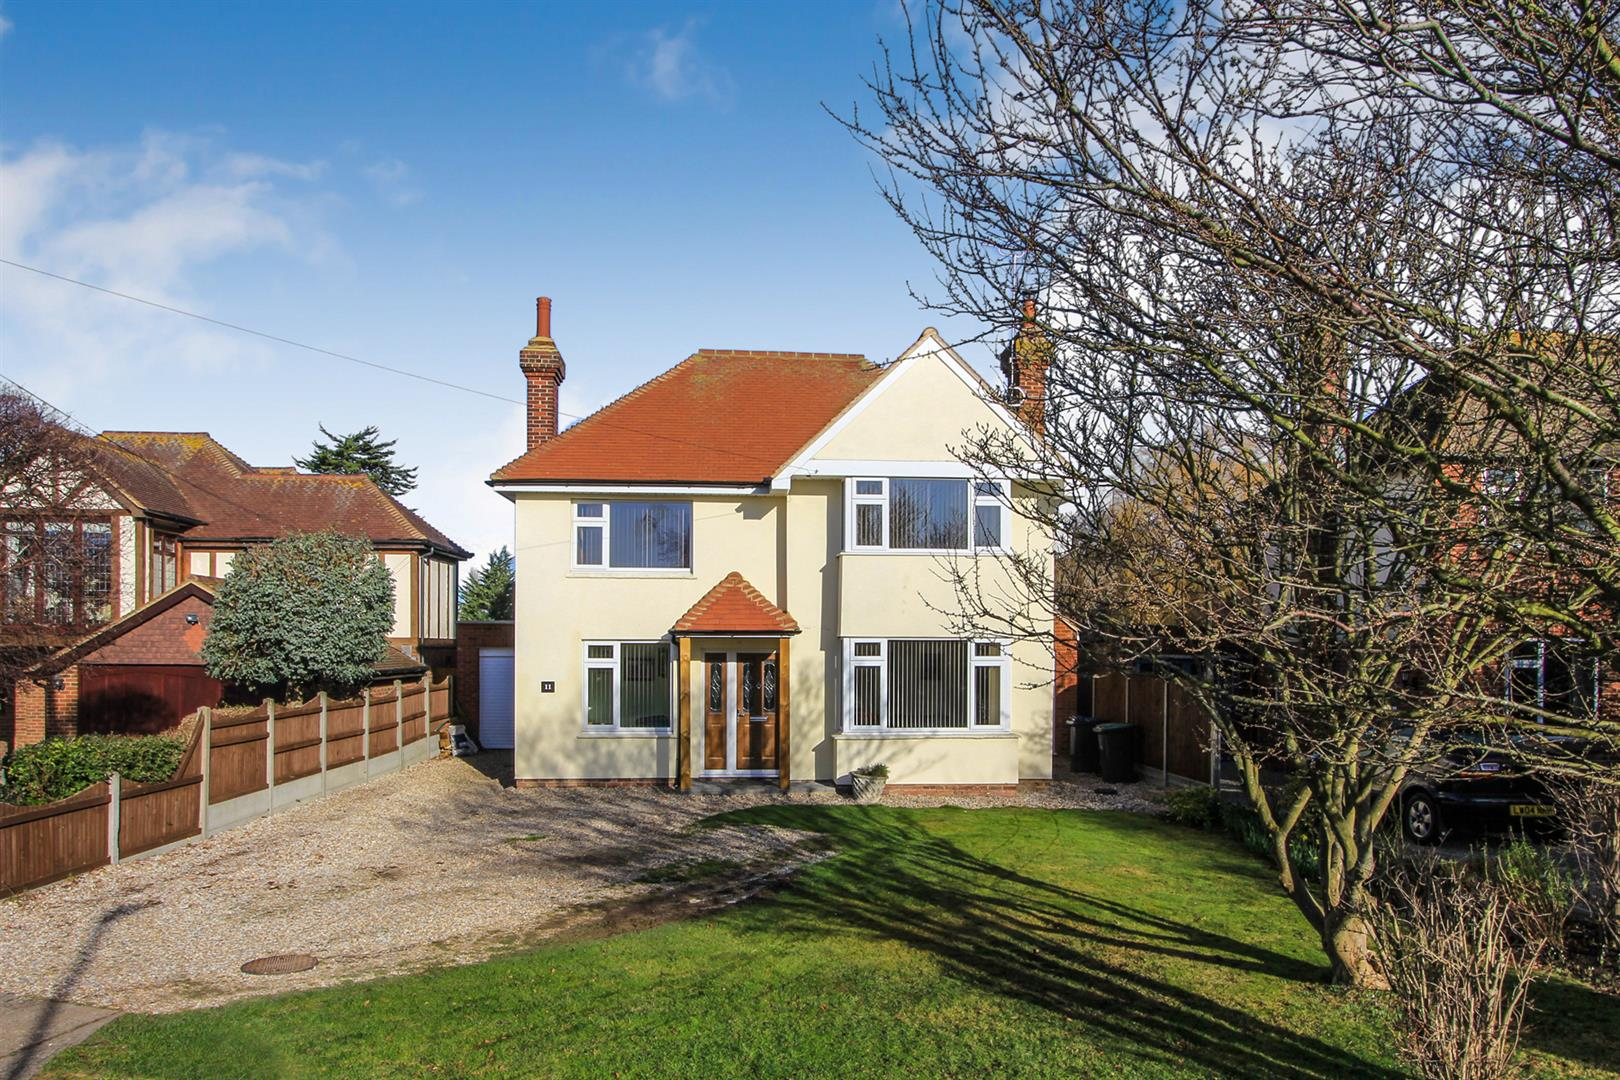 5 Bedrooms Detached House for sale in Chestfield, Cherry Orchard, Whitstable